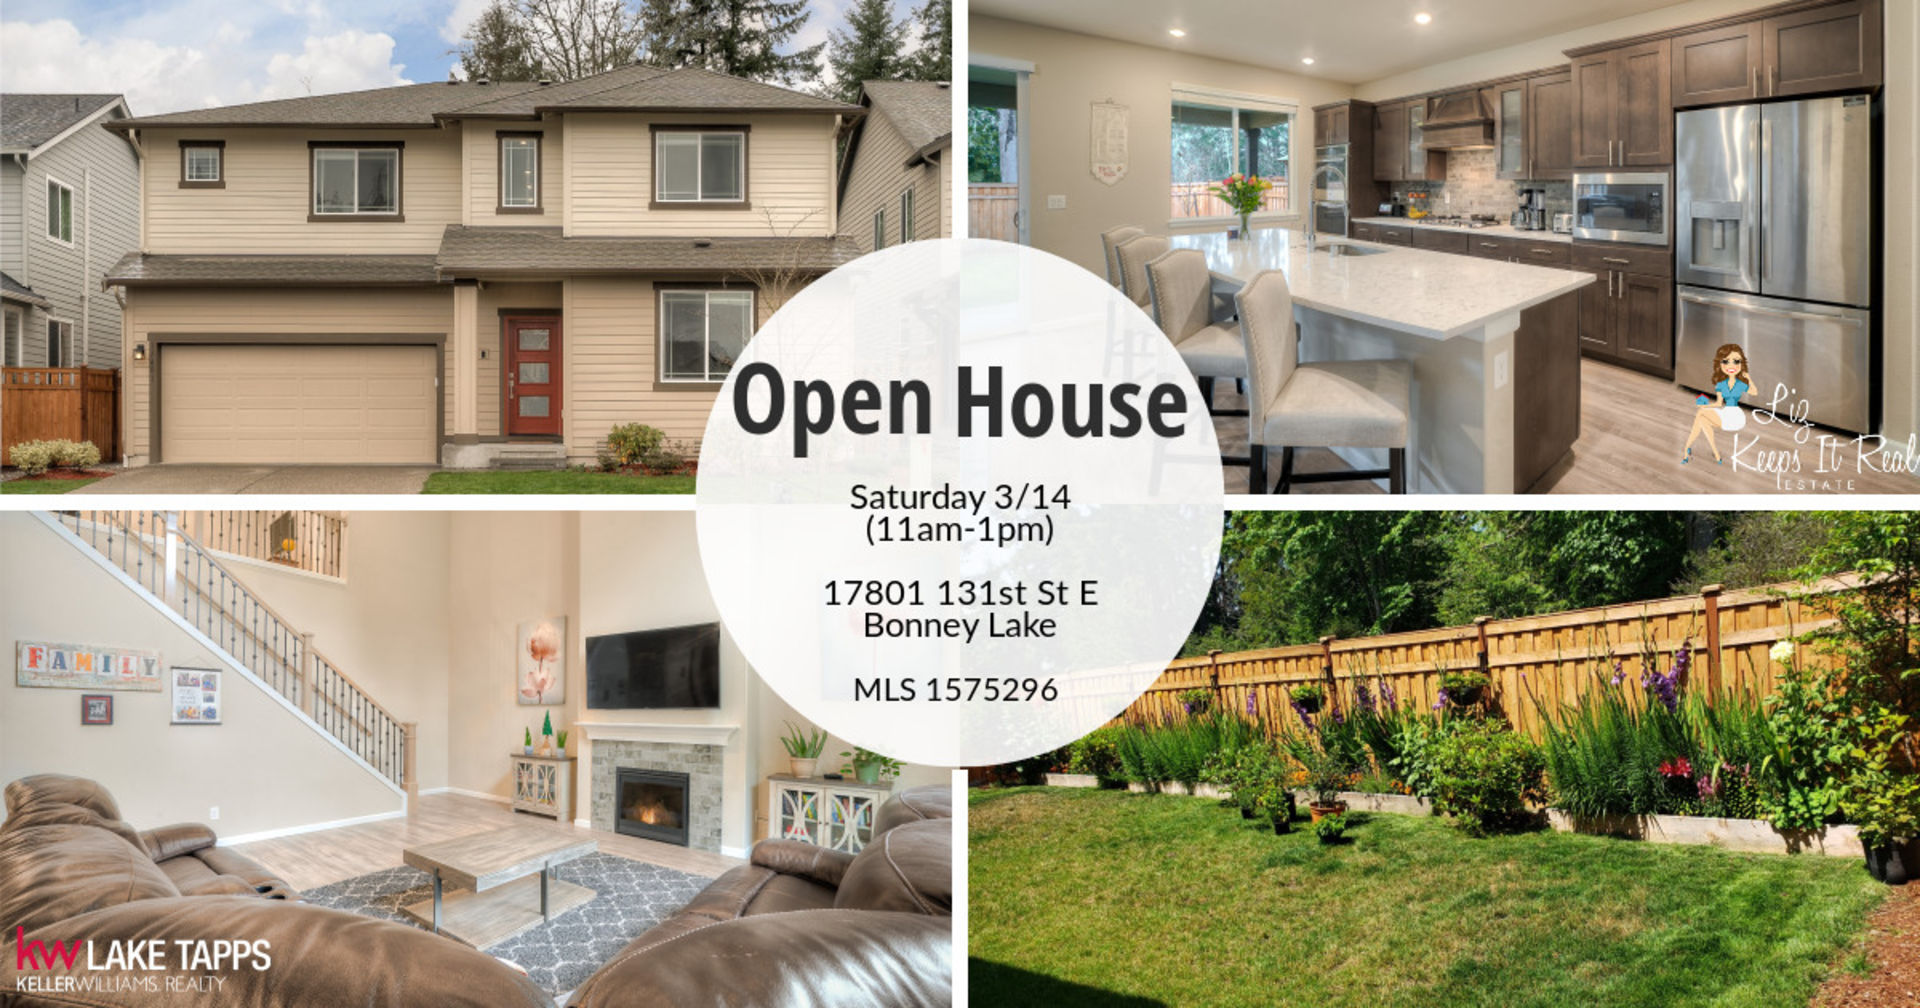 Open House This Weekend!